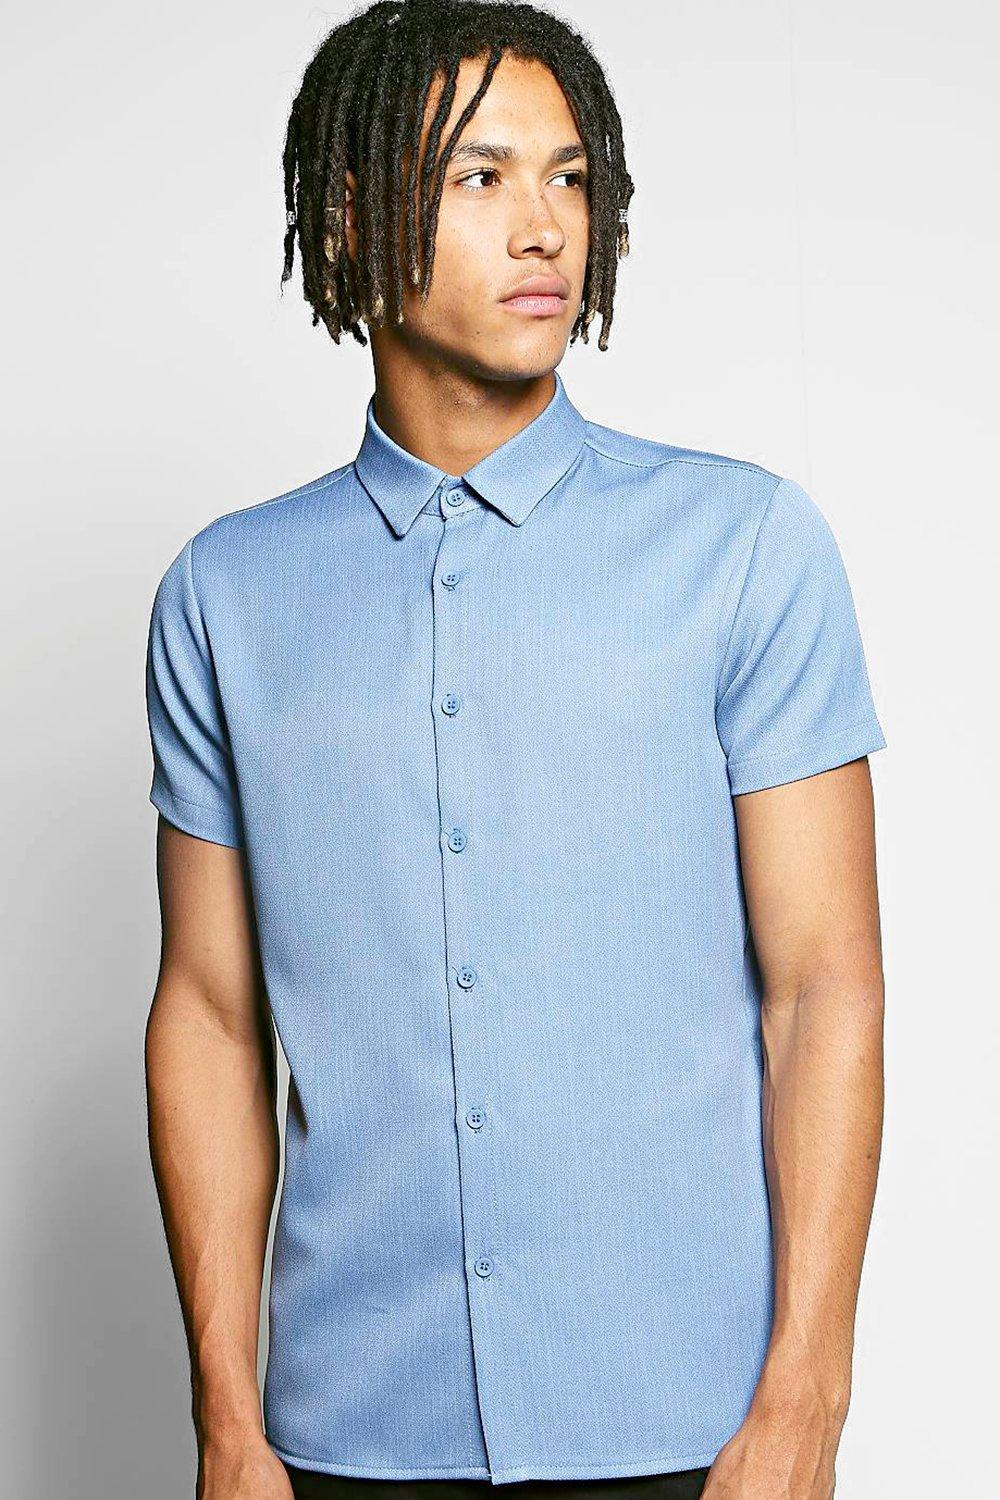 Herringbone Texture Short Sleeve Shirt